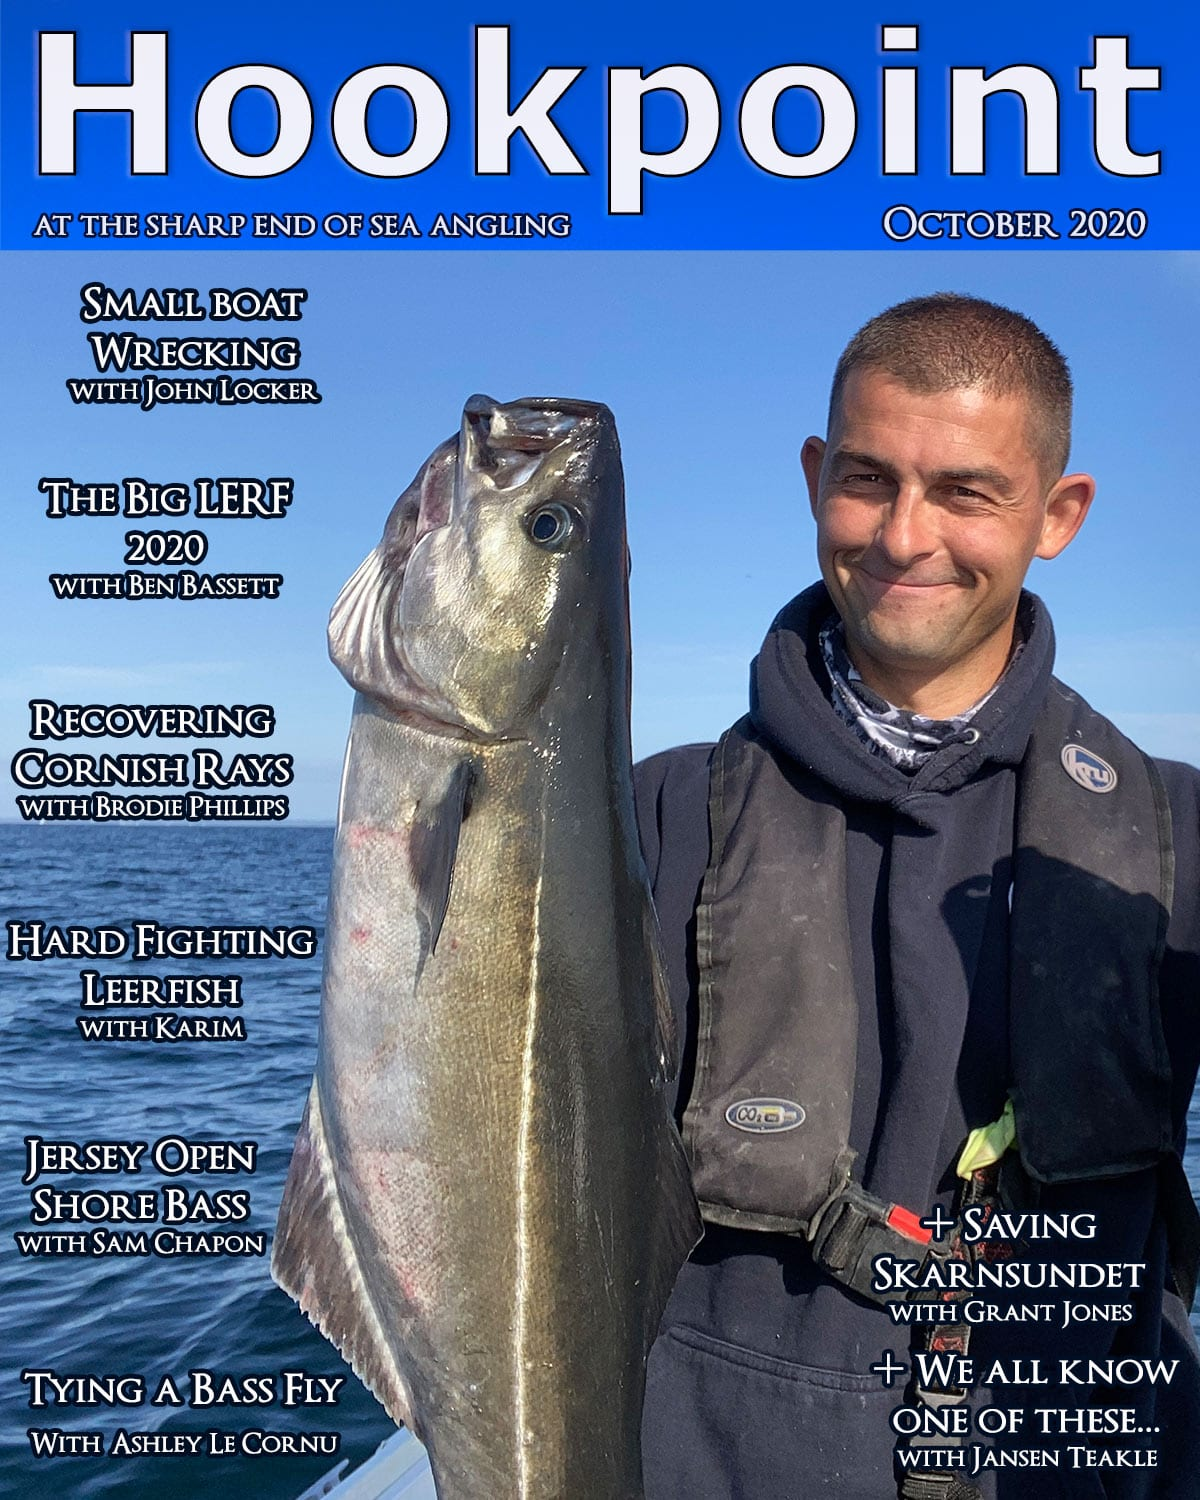 Hookpoint October cover